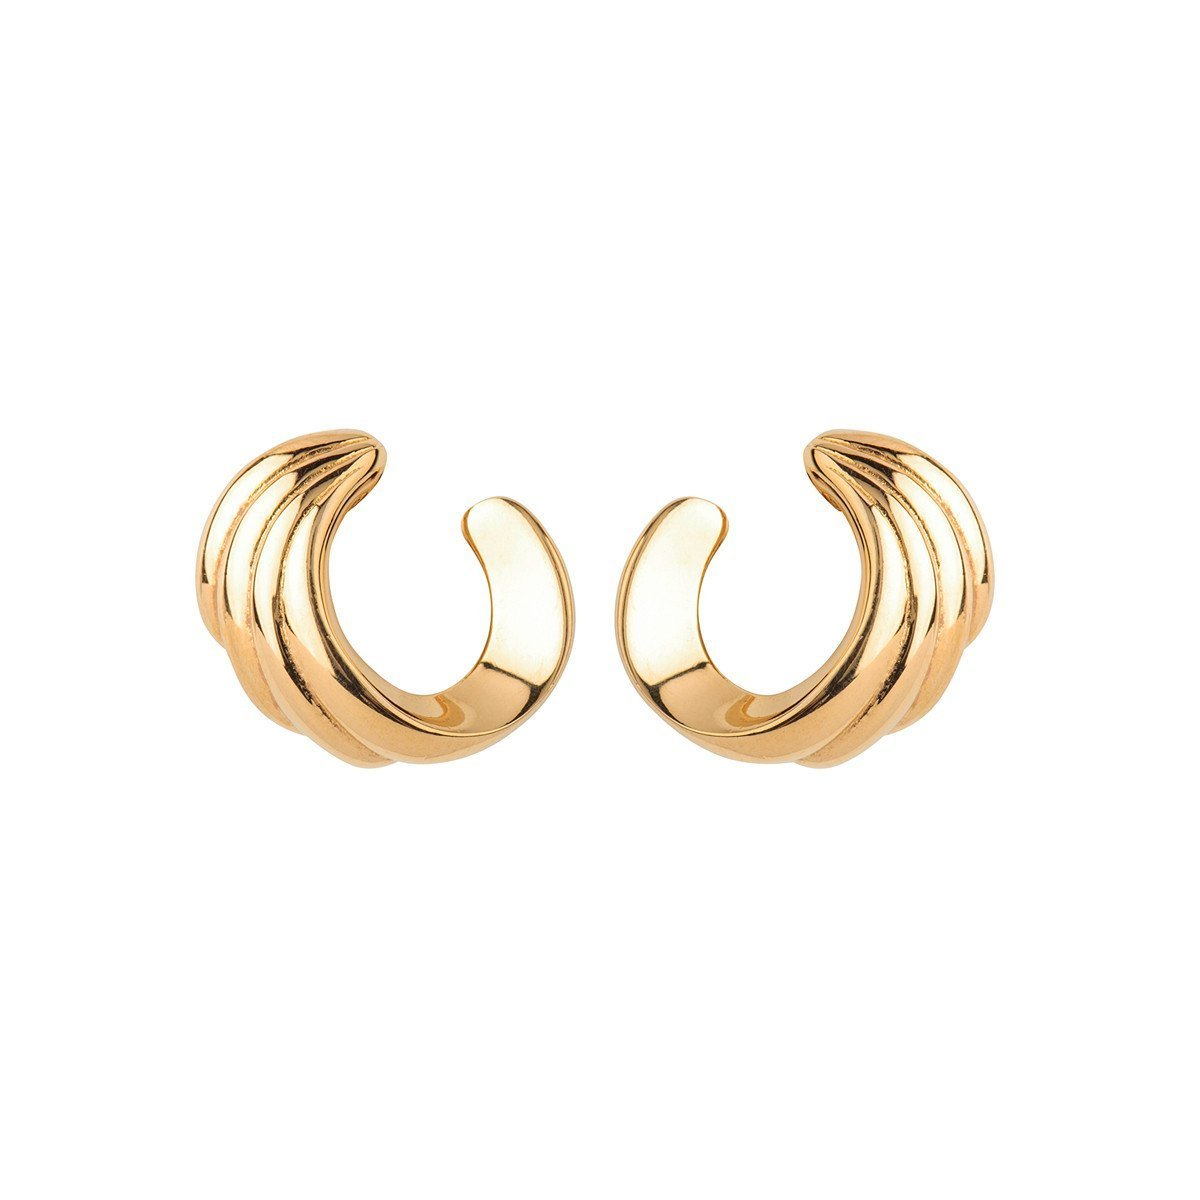 1970S VINTAGE MONET CURVE CLIP-ON EARRINGS